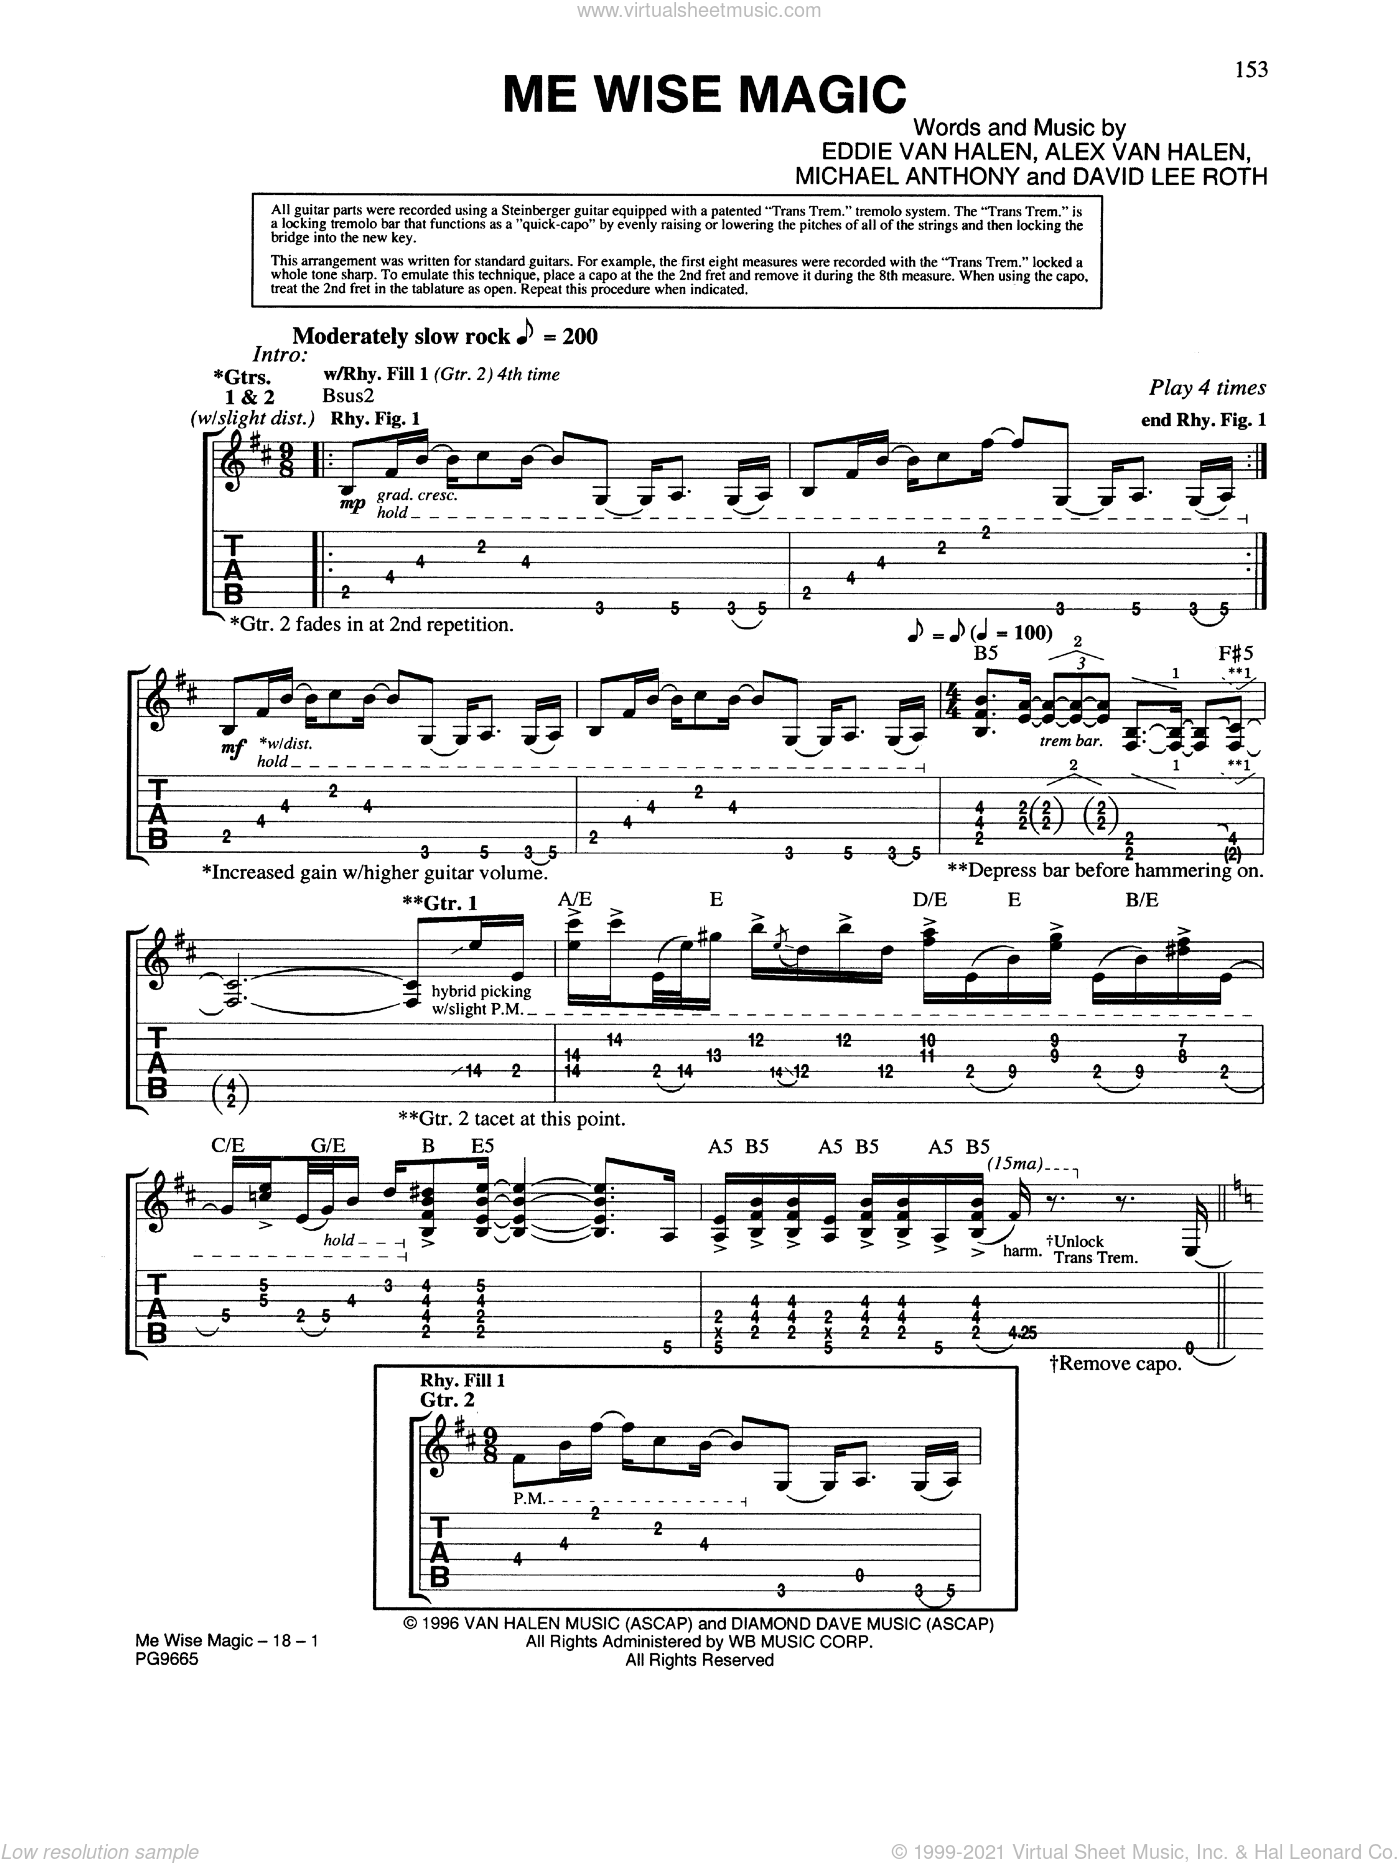 Me Wise Magic sheet music for guitar (tablature) by Edward Van Halen, Alex Van Halen, David Lee Roth and Michael Anthony, intermediate. Score Image Preview.